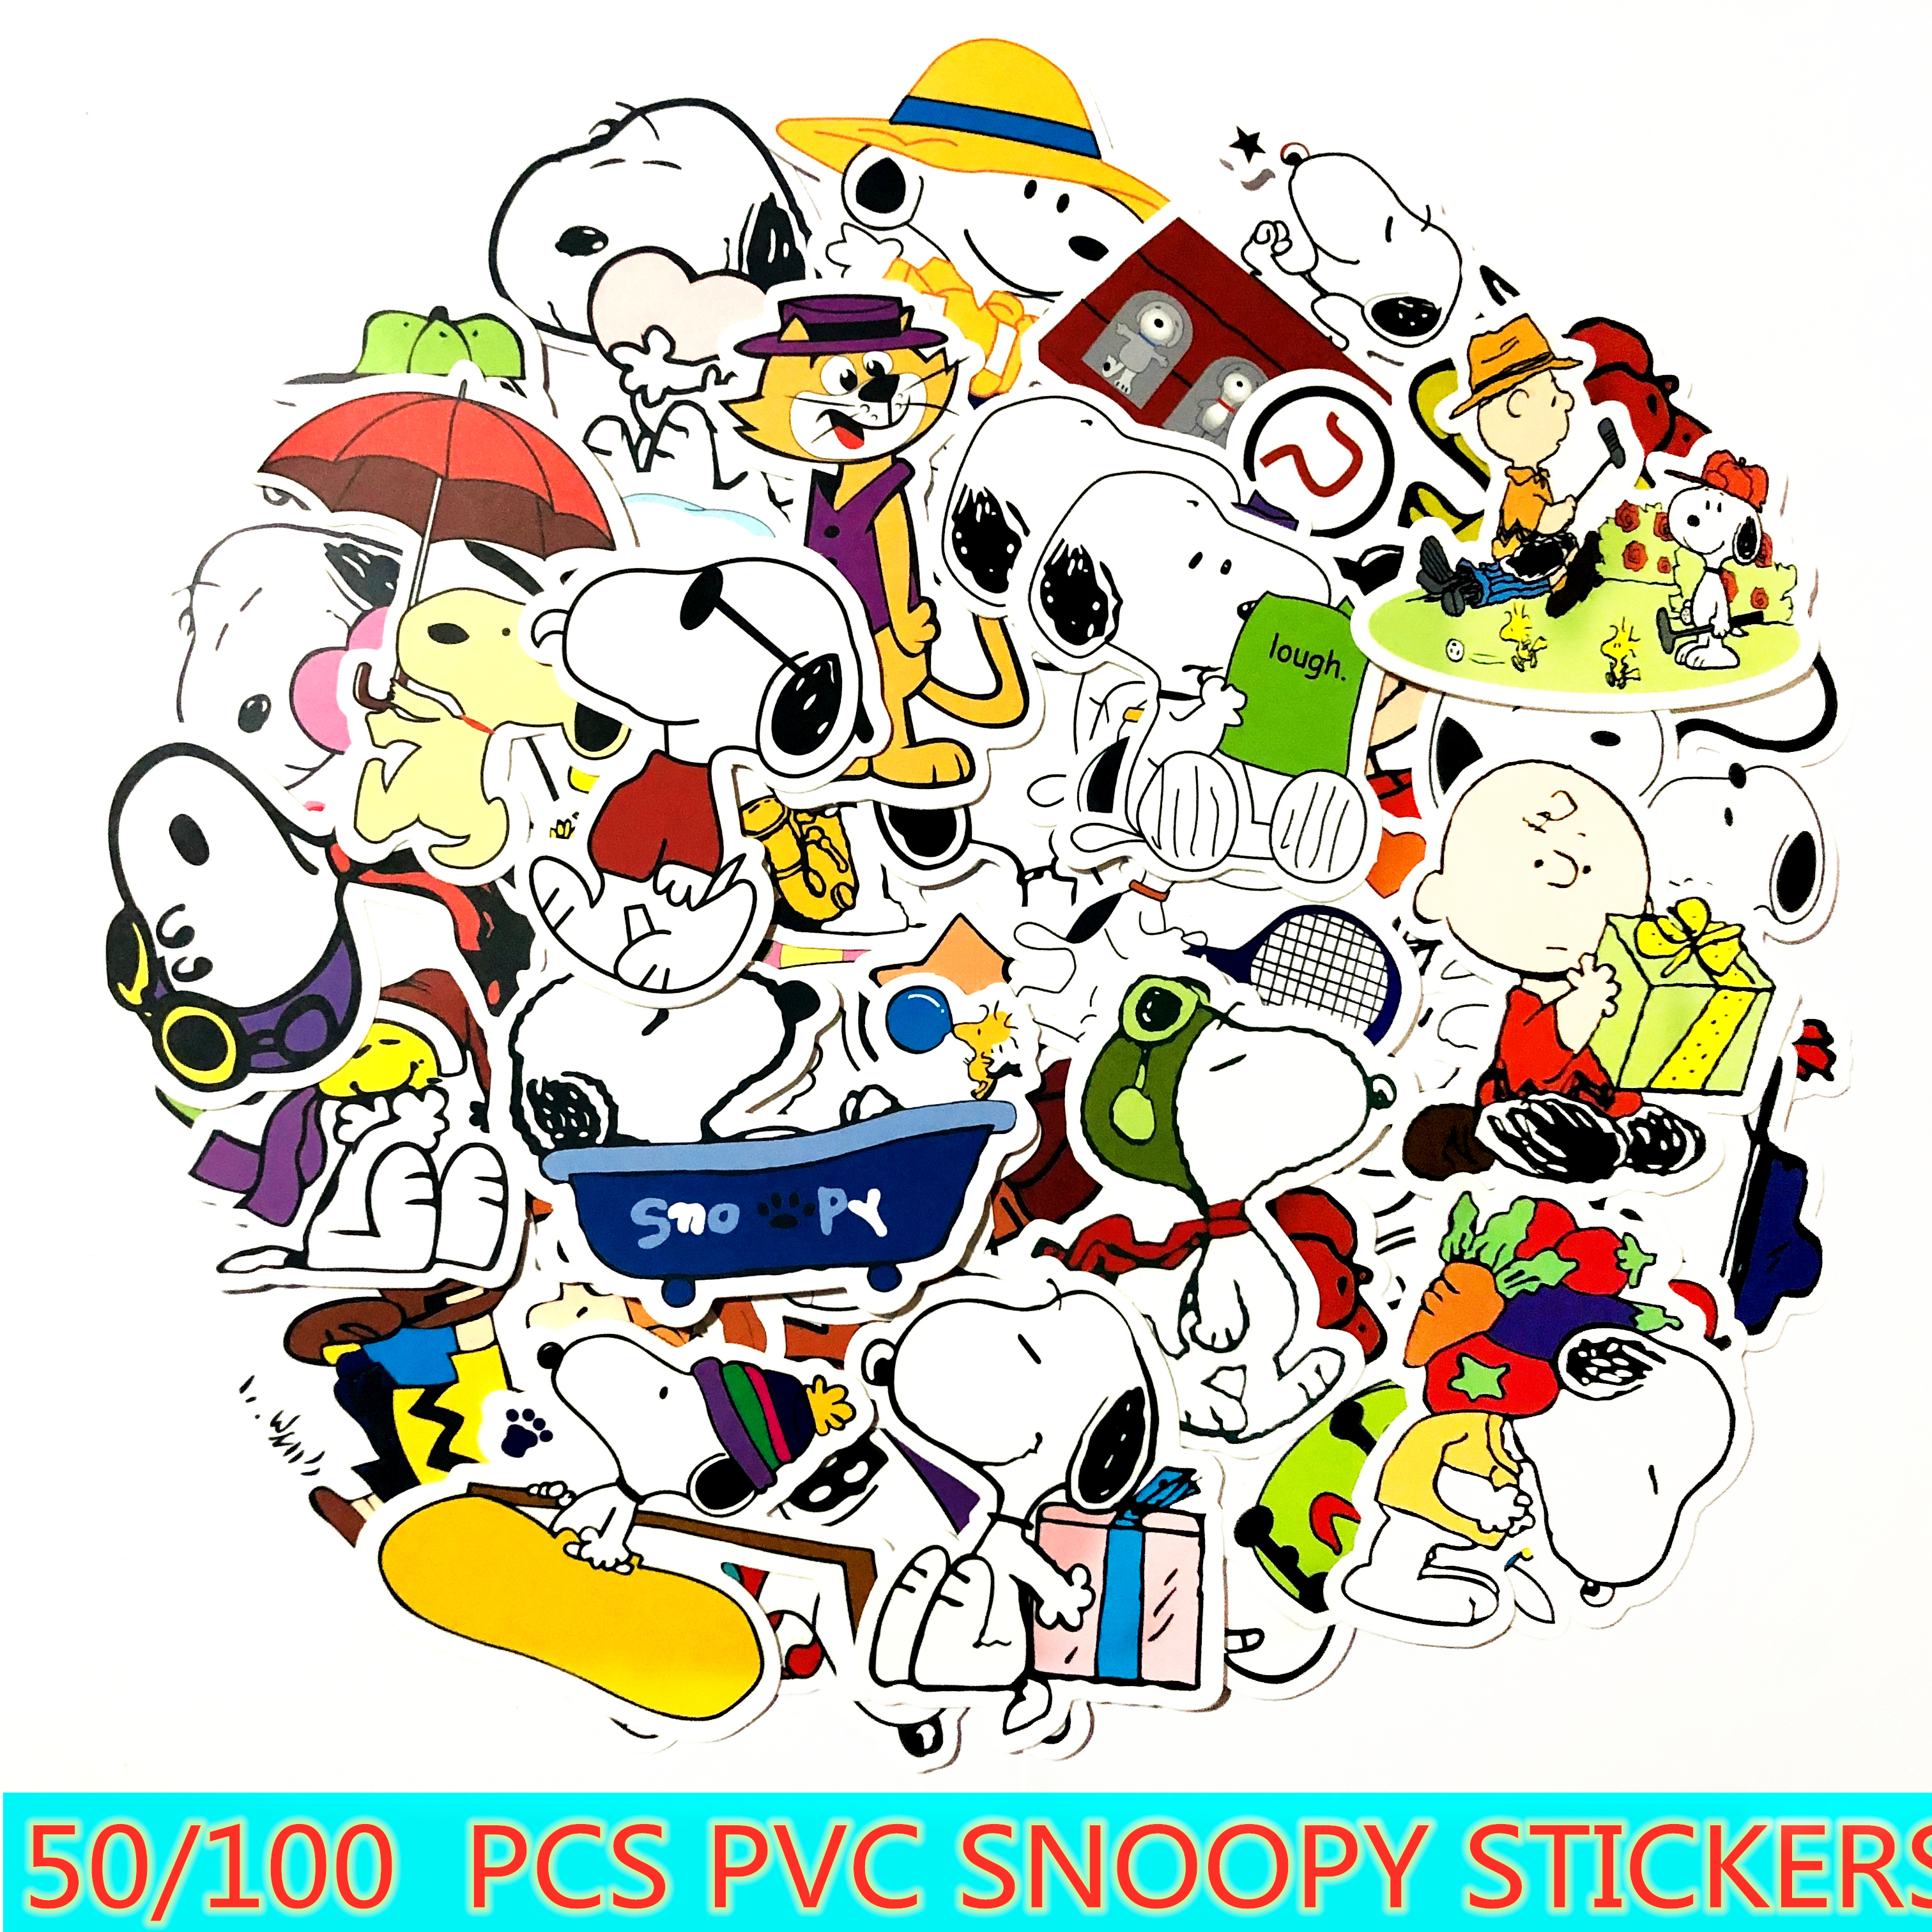 50/100pcs cartoon Snoopy stickers For Laptop Skateboard Luggage Decal Office Toy Appliances netbook waterproof stickers-in Stickers from Toys & Hobbies